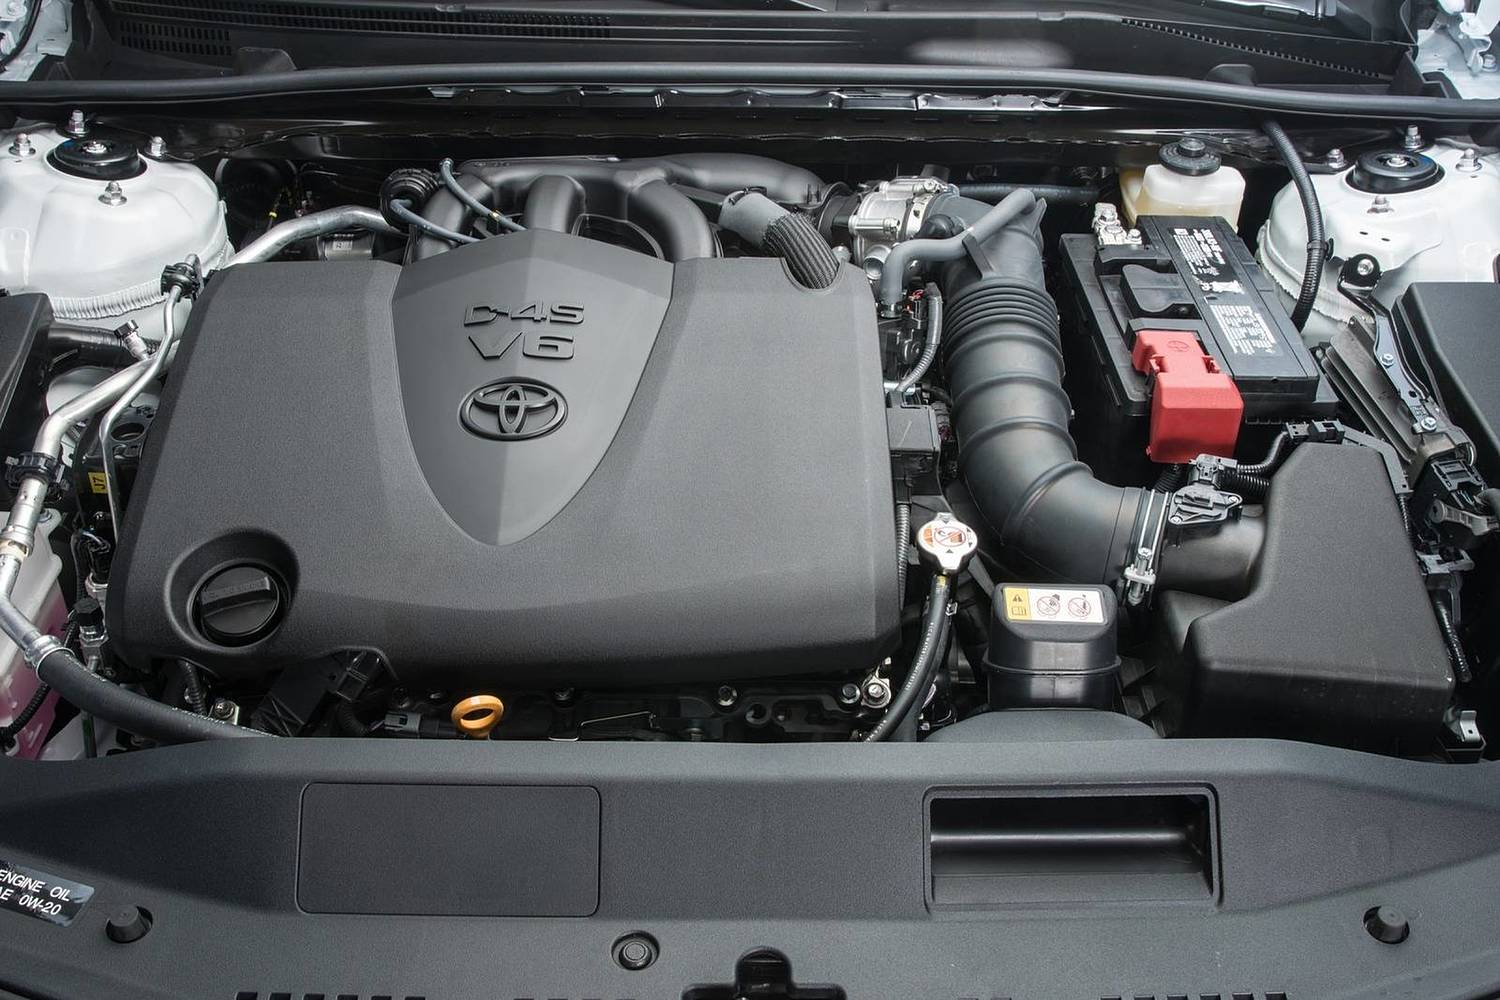 2018 Toyota Camry XLE Sedan 3.5L V6 Engine Shown